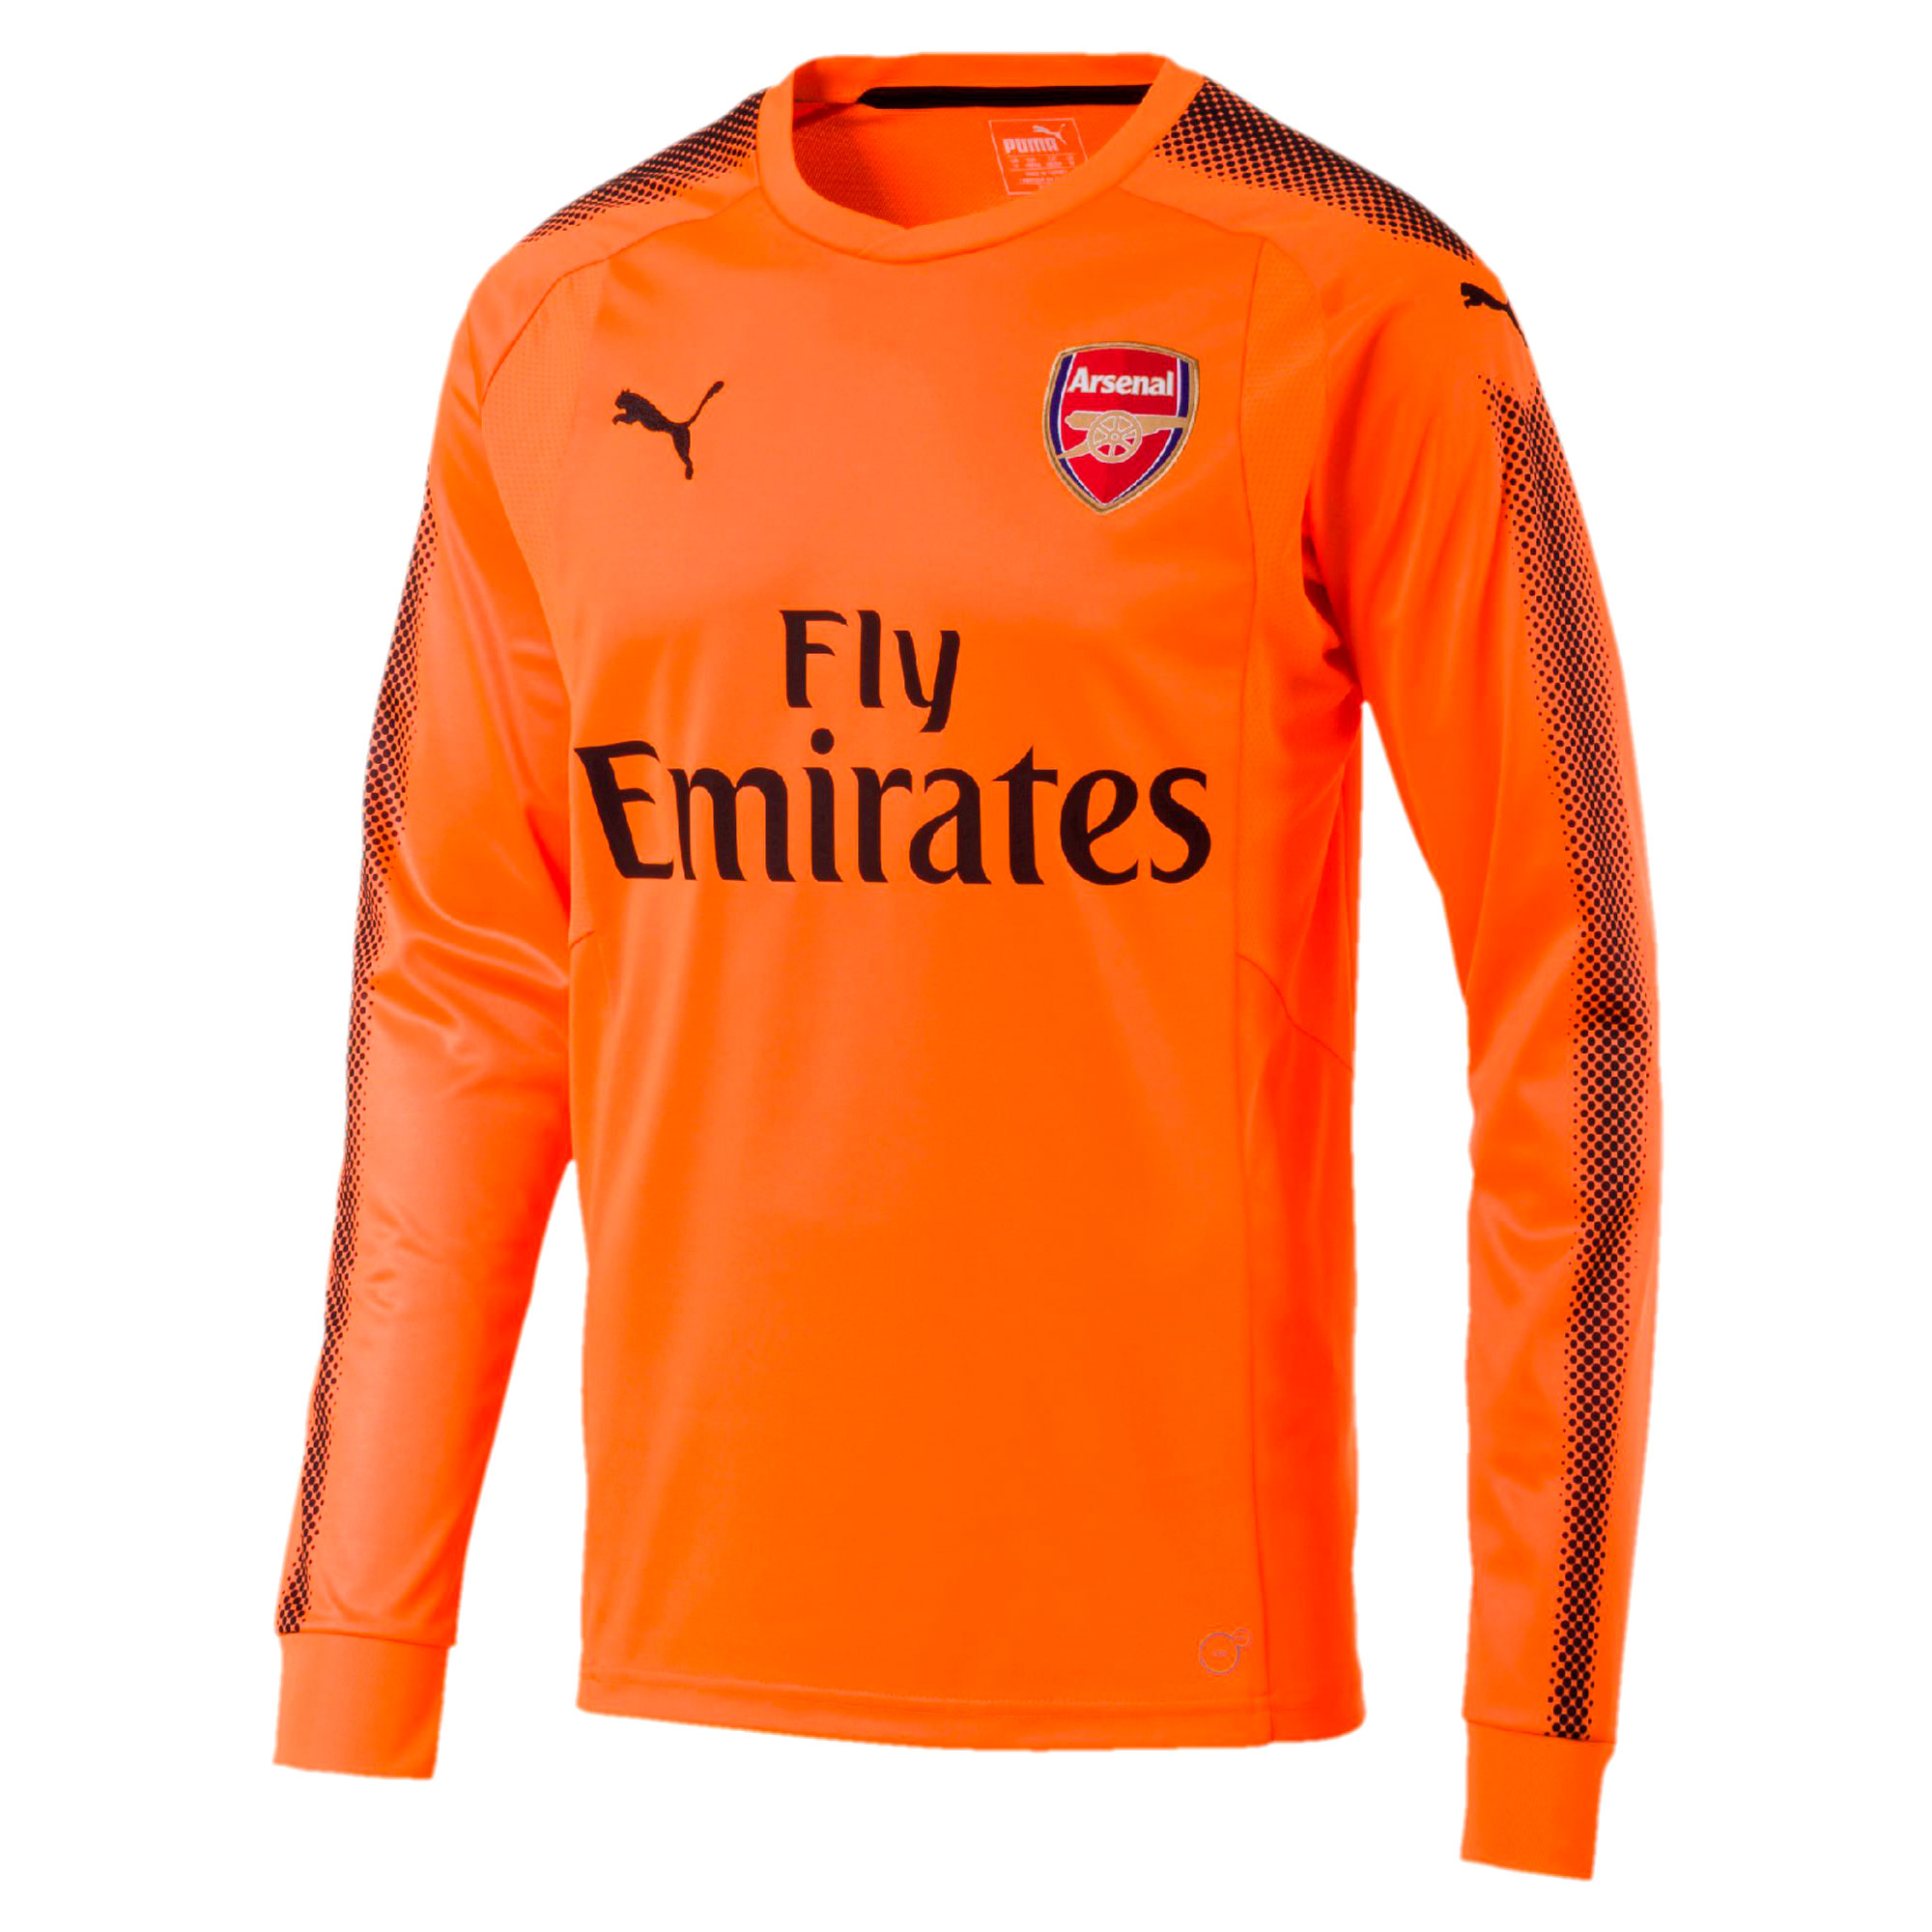 Arsenal Goalkeeper shirt